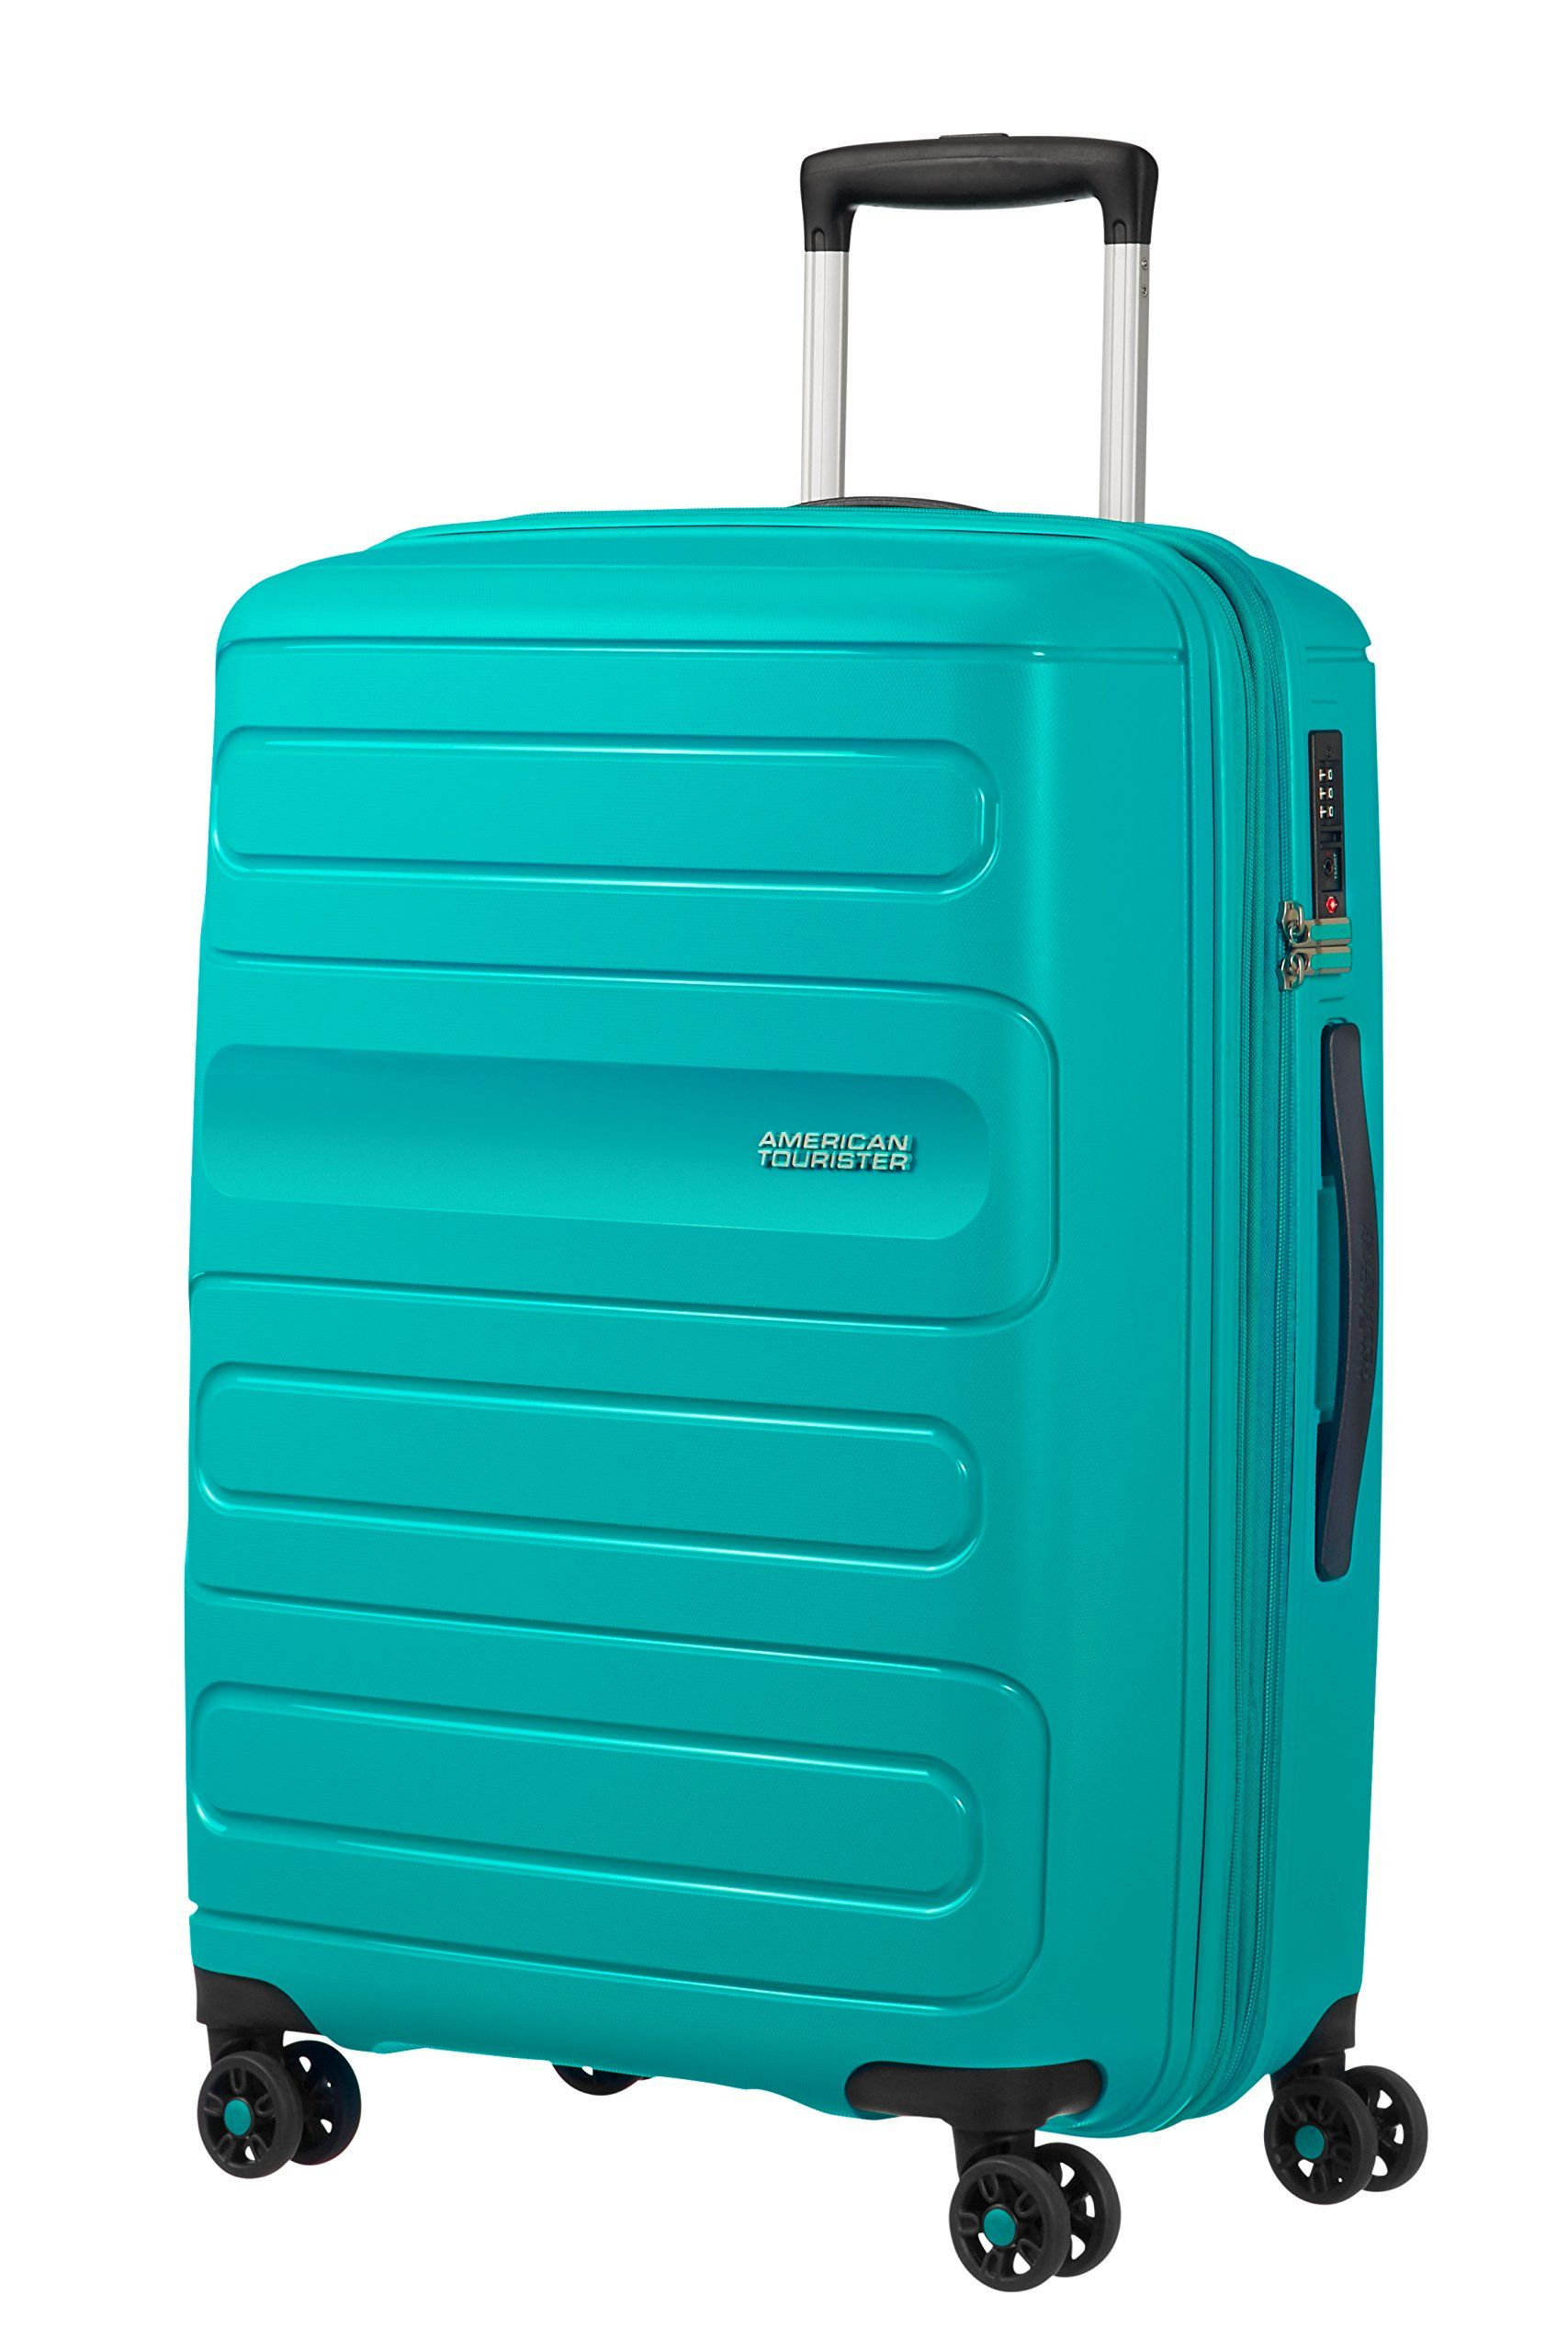 American Tourister Sunside Spinner 68 Expandable 3 7 Kg 72 5 83 5l Hand Luggage Suitcases Luggage Sets Travel Totes Children S Luggage Uk